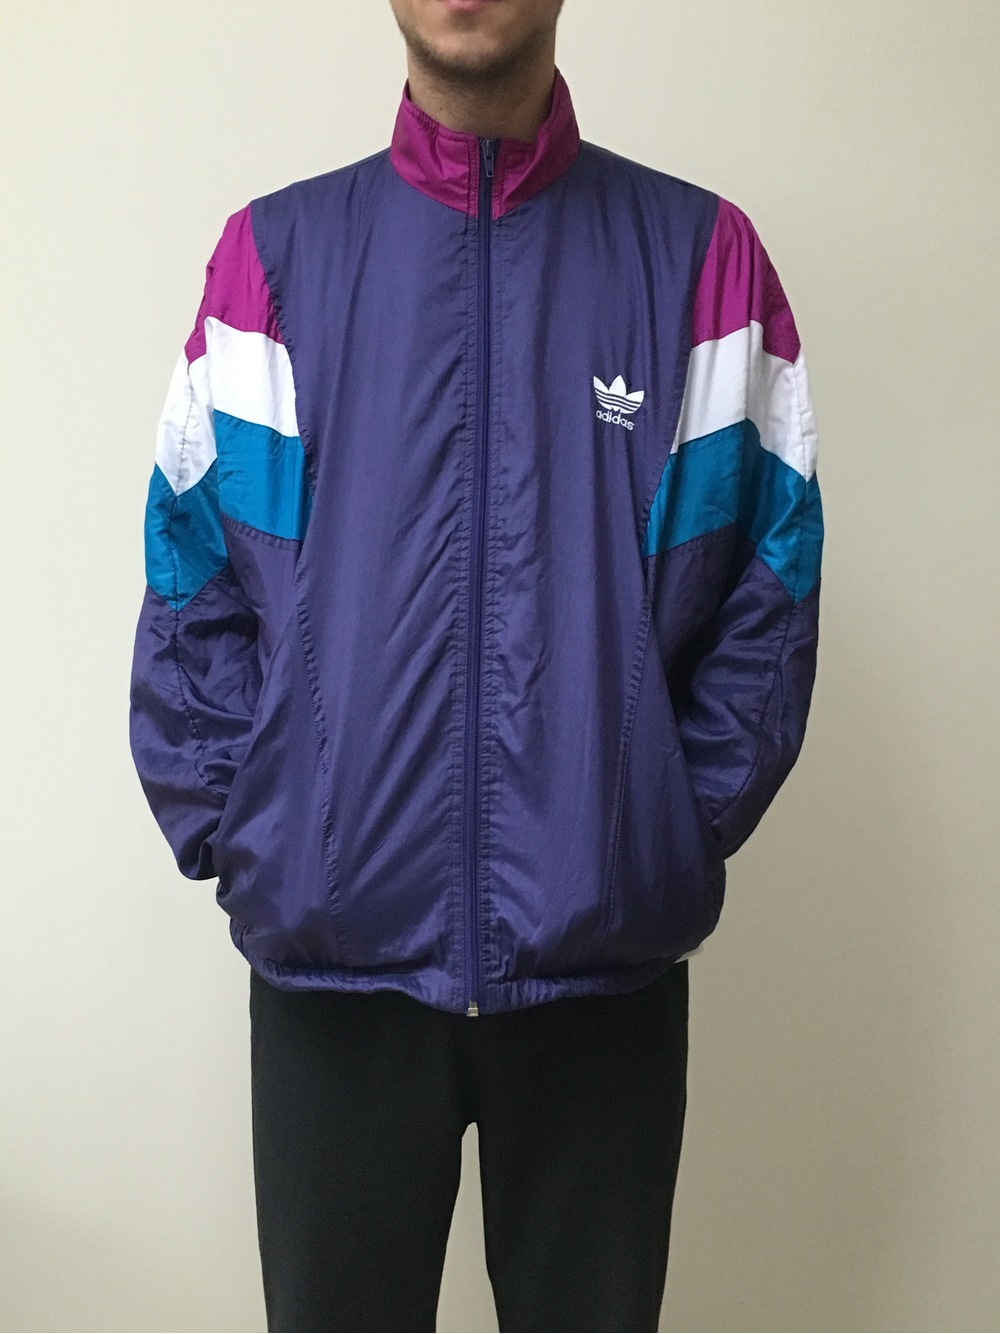 Windbreaker Jacket Vintage Jackets Review